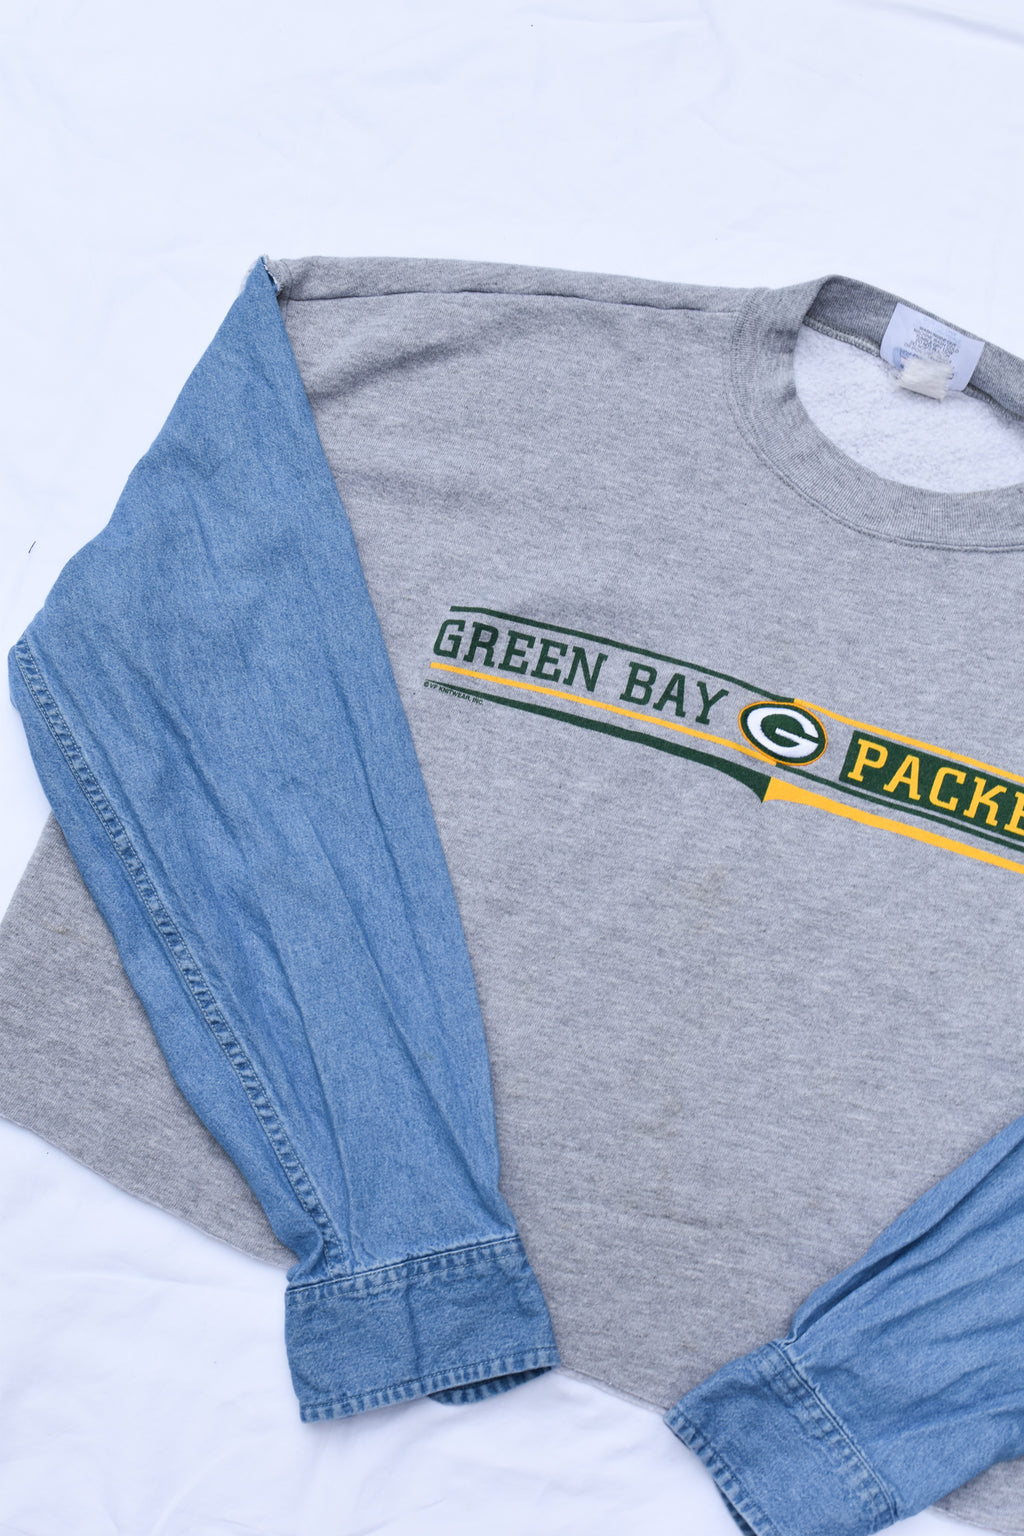 Upcycled VINTAGE Packers Denim Sleeve Sweatshirt